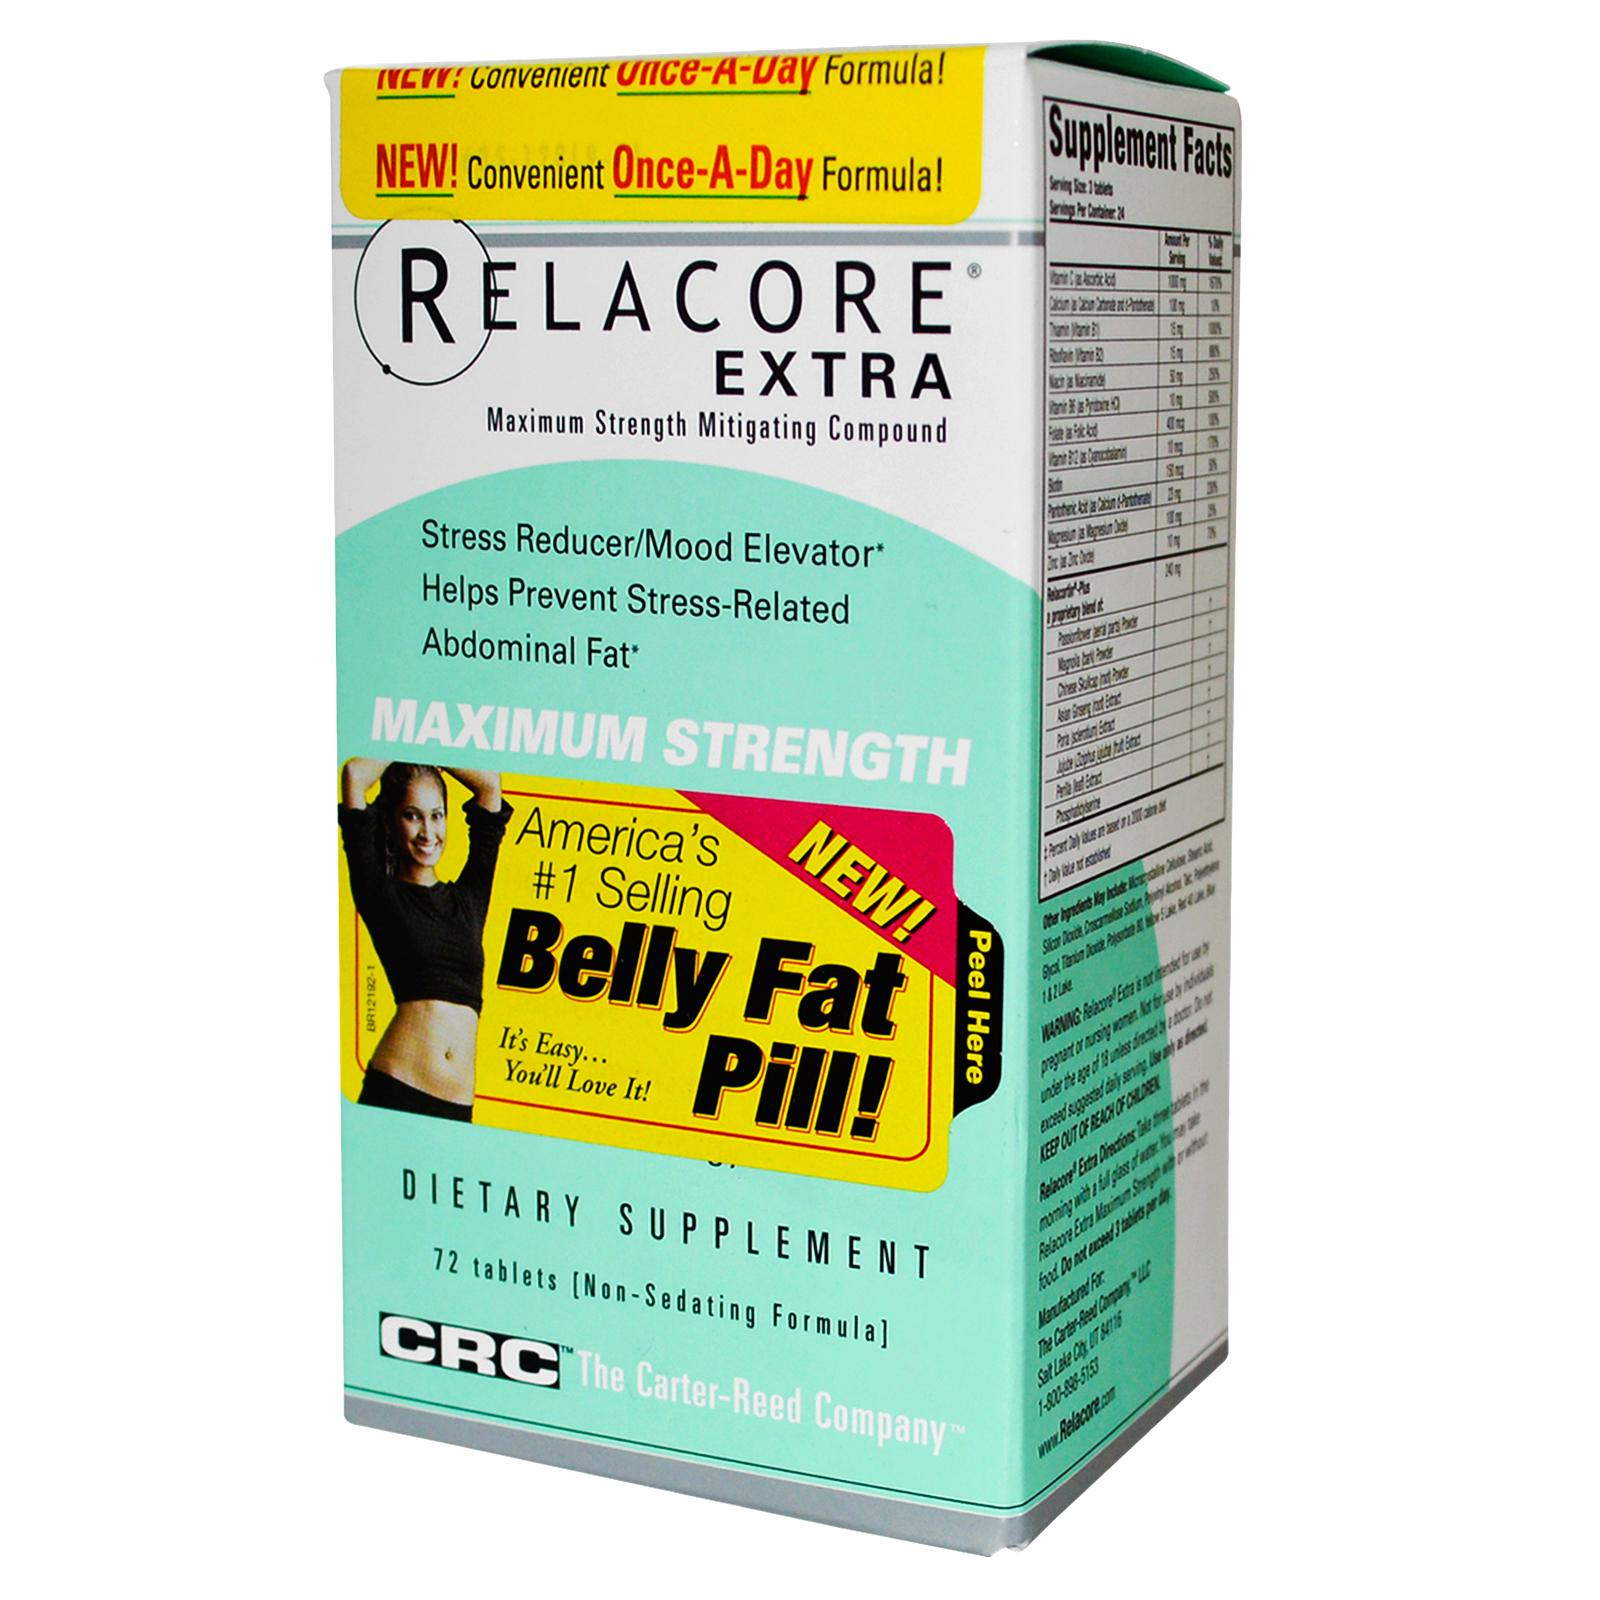 Belly fat pill